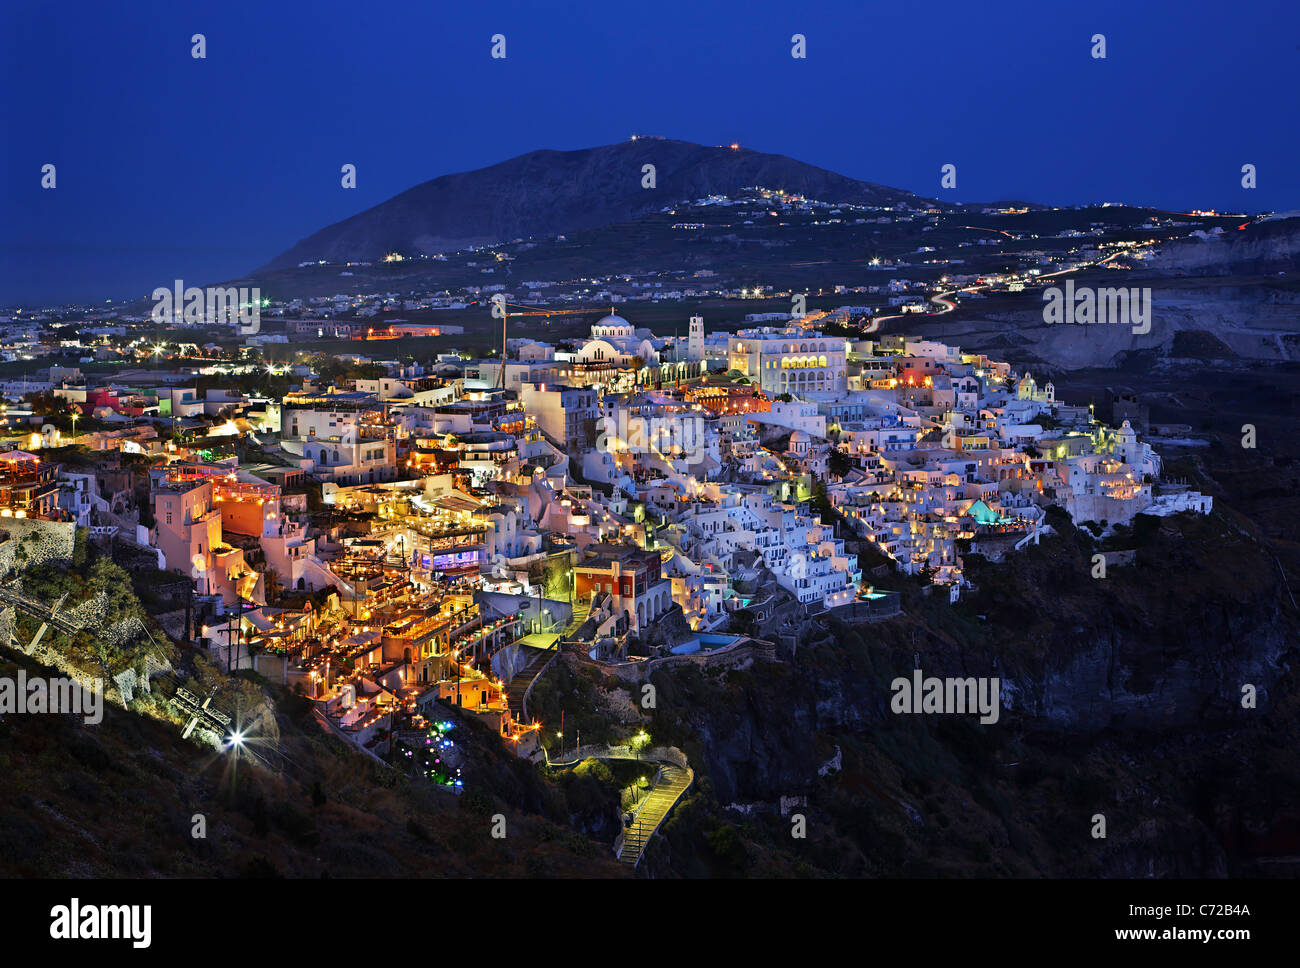 Night view of Fira village, the 'capital' of Santorini island, hanging over the caldera. Cyclades, Greece - Stock Image